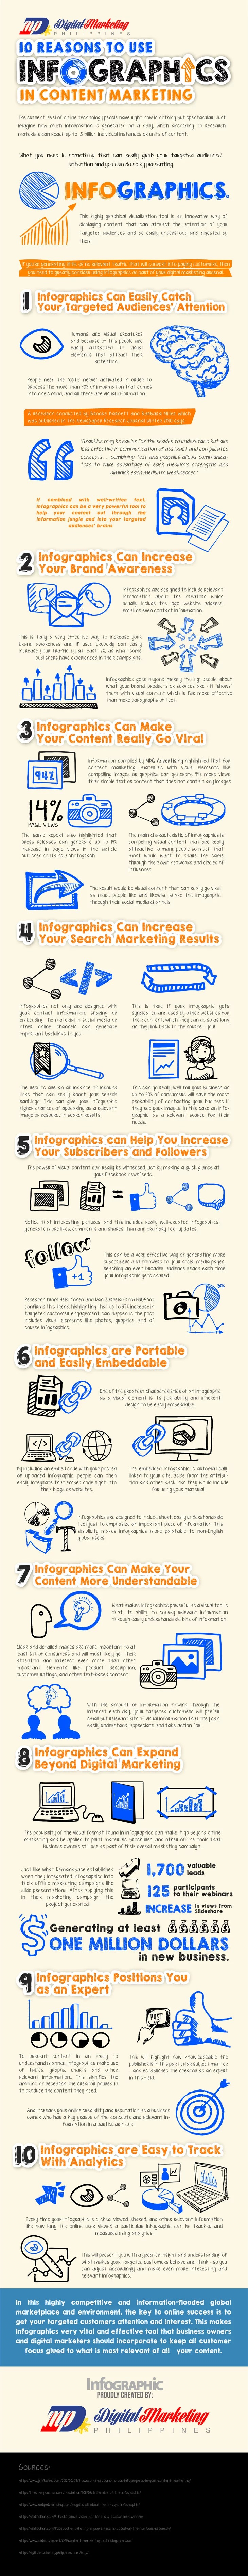 10 Reasons to Use Infographics in Content Marketing (Infographic) - An Infographic from Digital Marketing Philippines